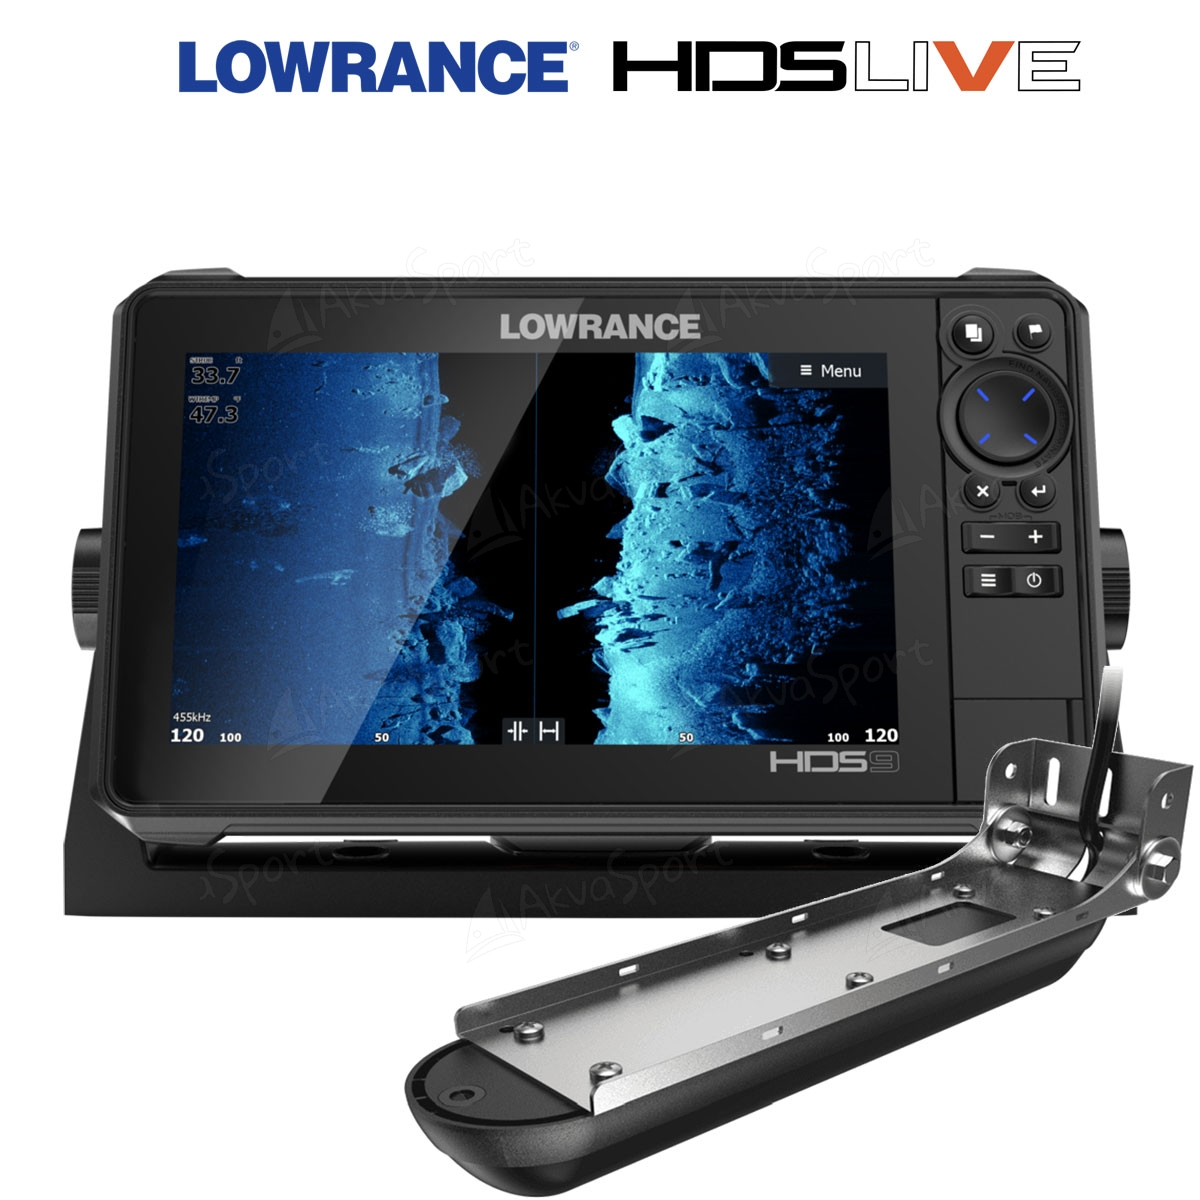 Lowrance Hds 9 Live With Active Imaging 3 In 1 Transducer